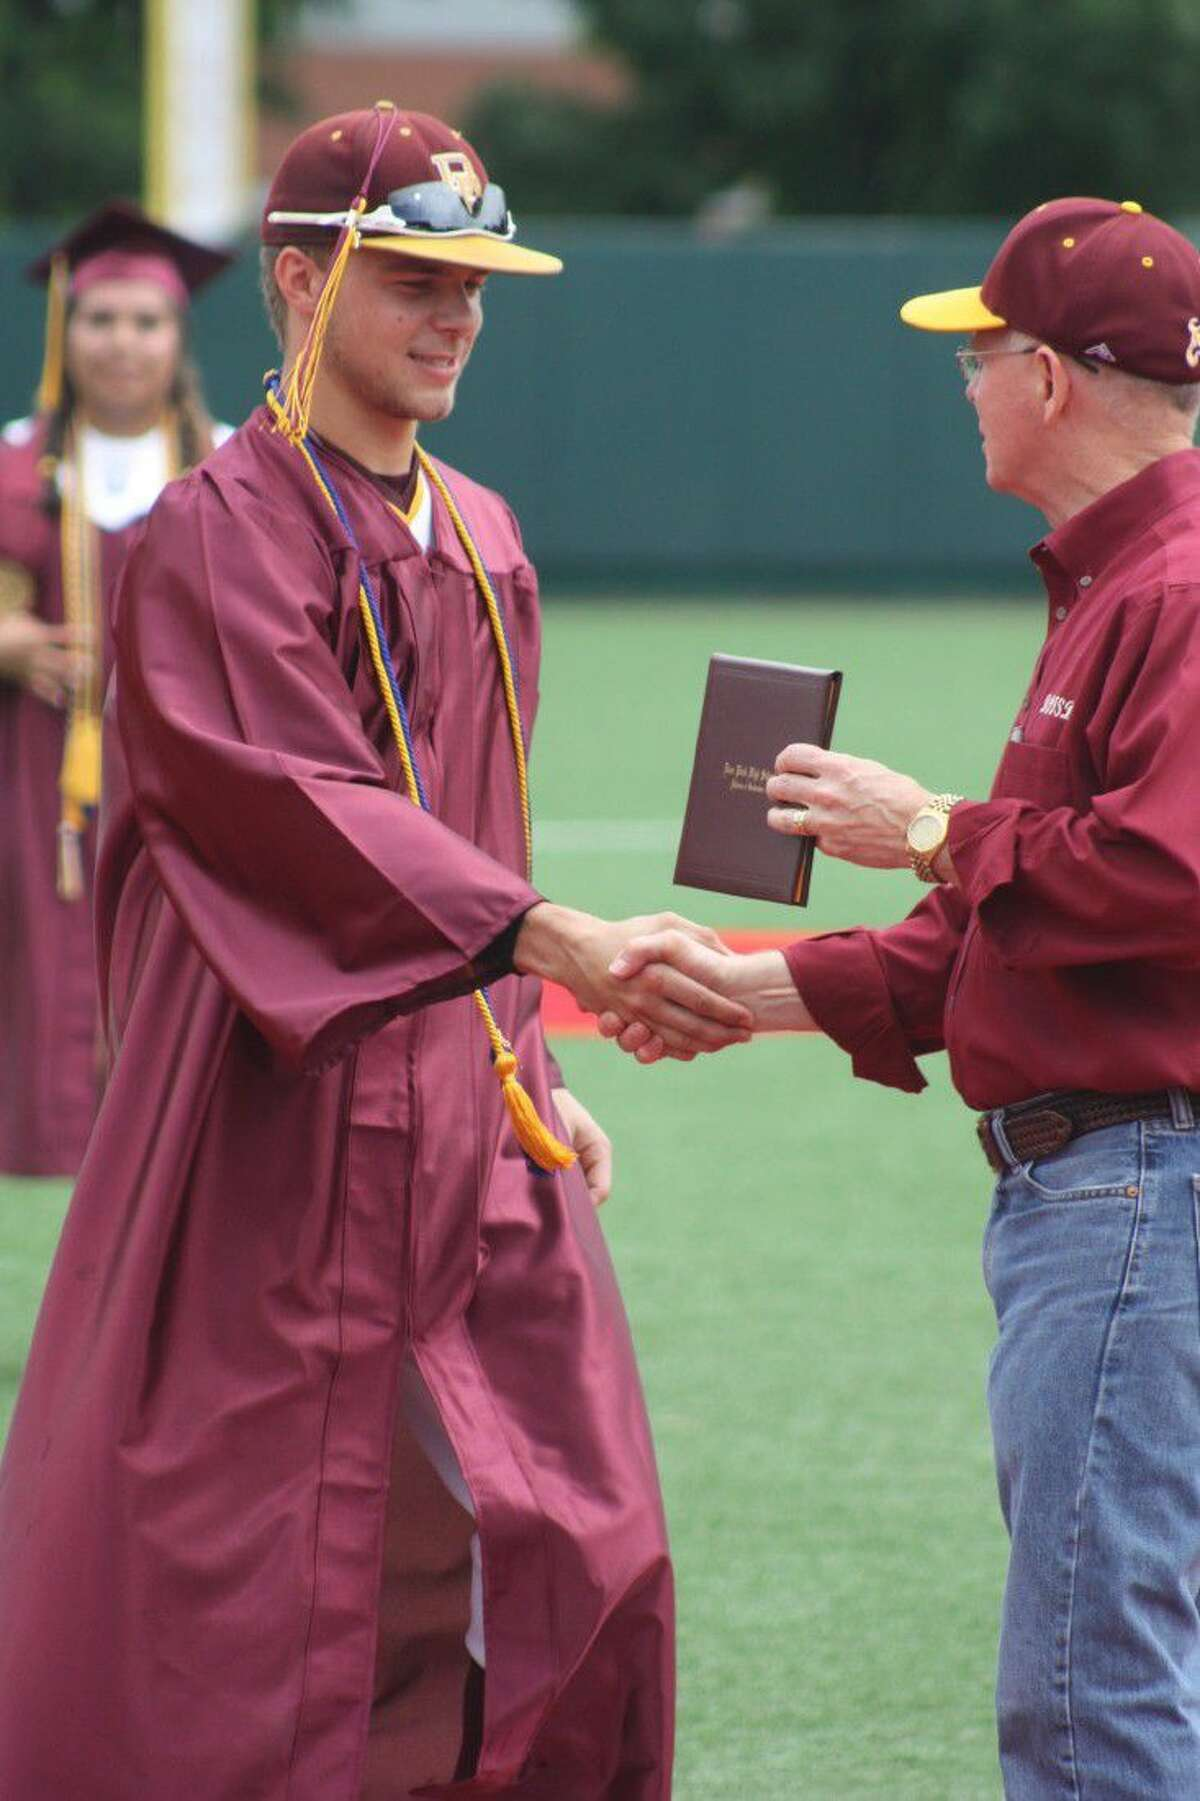 In the unlikeliest of settings, Cameron Thompson, wearing his baseball uniform under his graduation gown, receives his high school diploma from Superintendent Victor White last Friday morning at UHs Schroeder Park. He and 10 others plus a student trainer and manager, walked down the third-base line to receive their diploma.